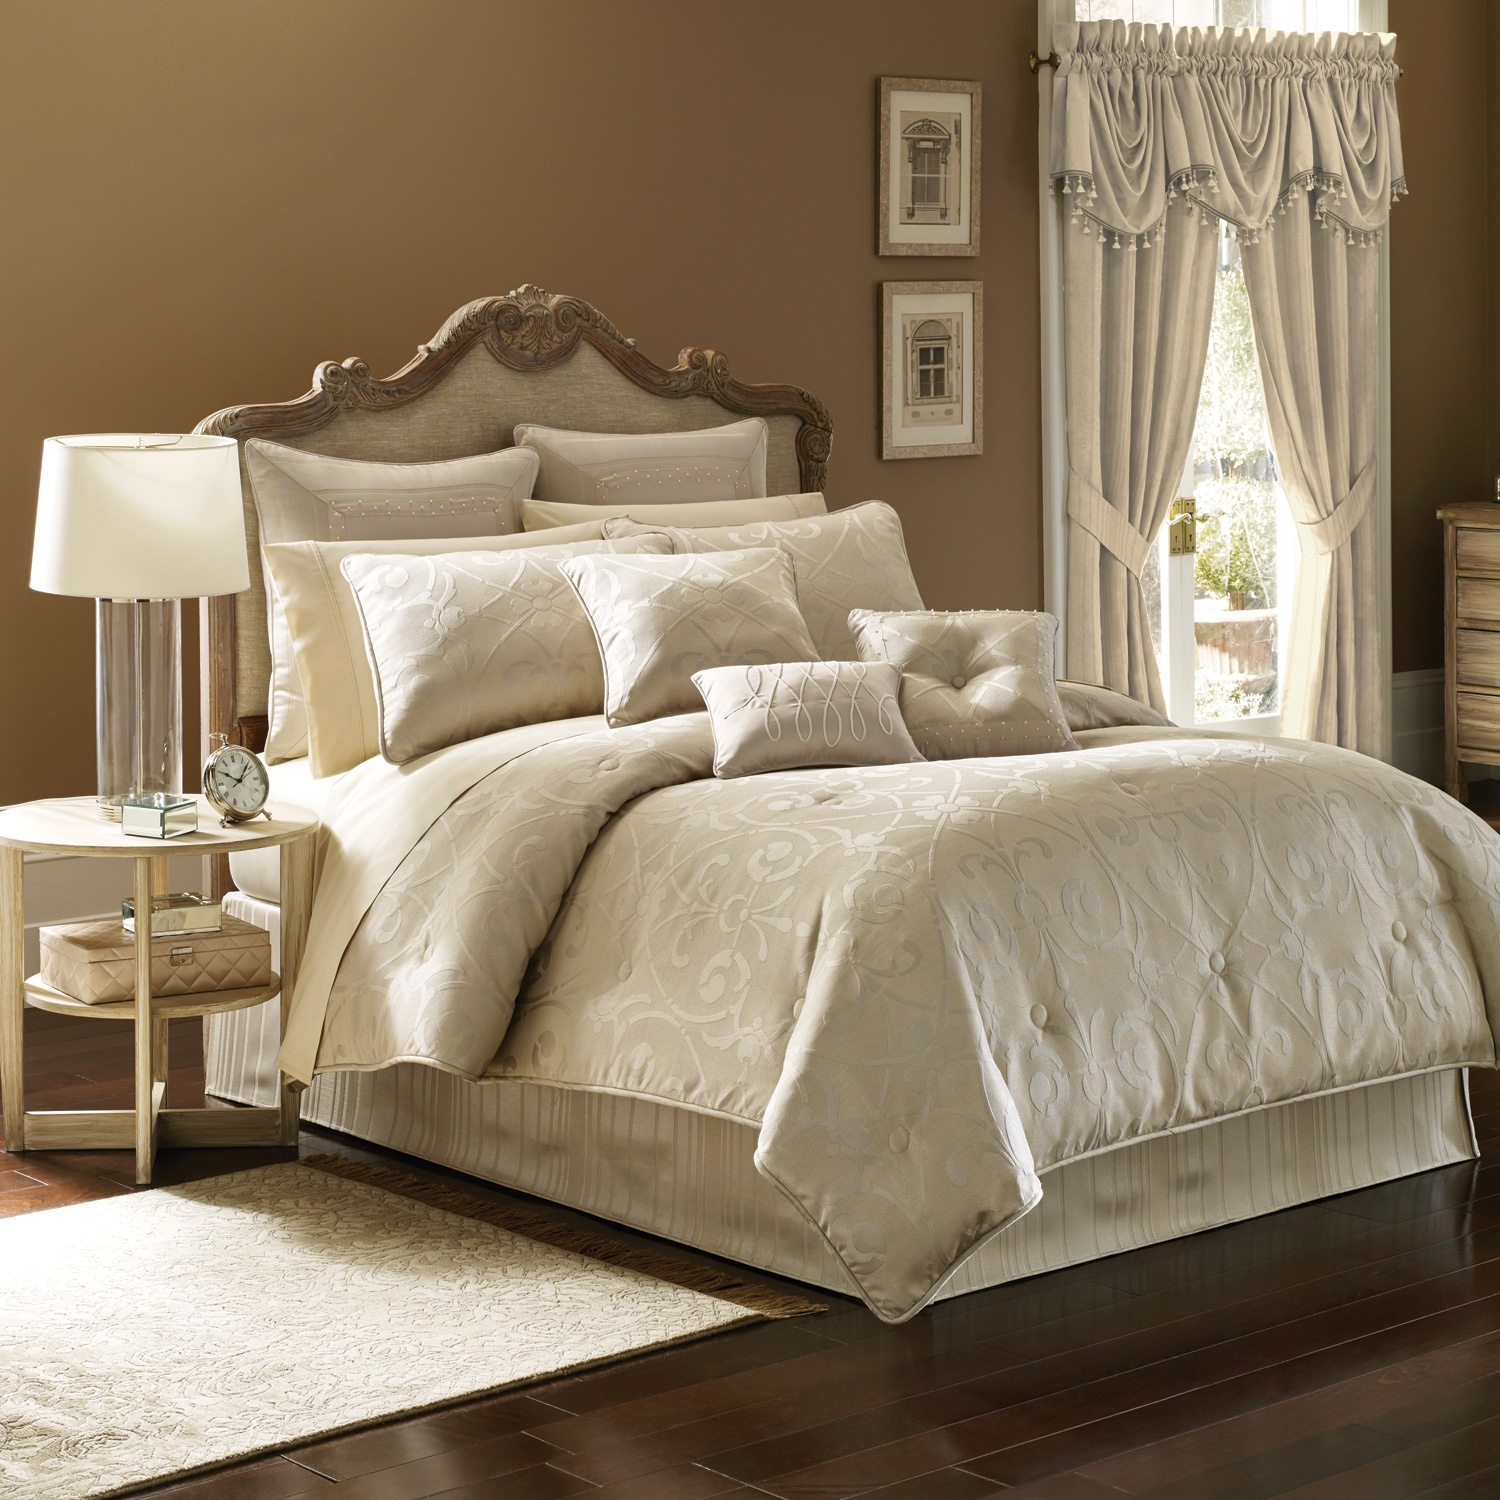 Dazzling comforters sets for bedroom design with queen comforter sets